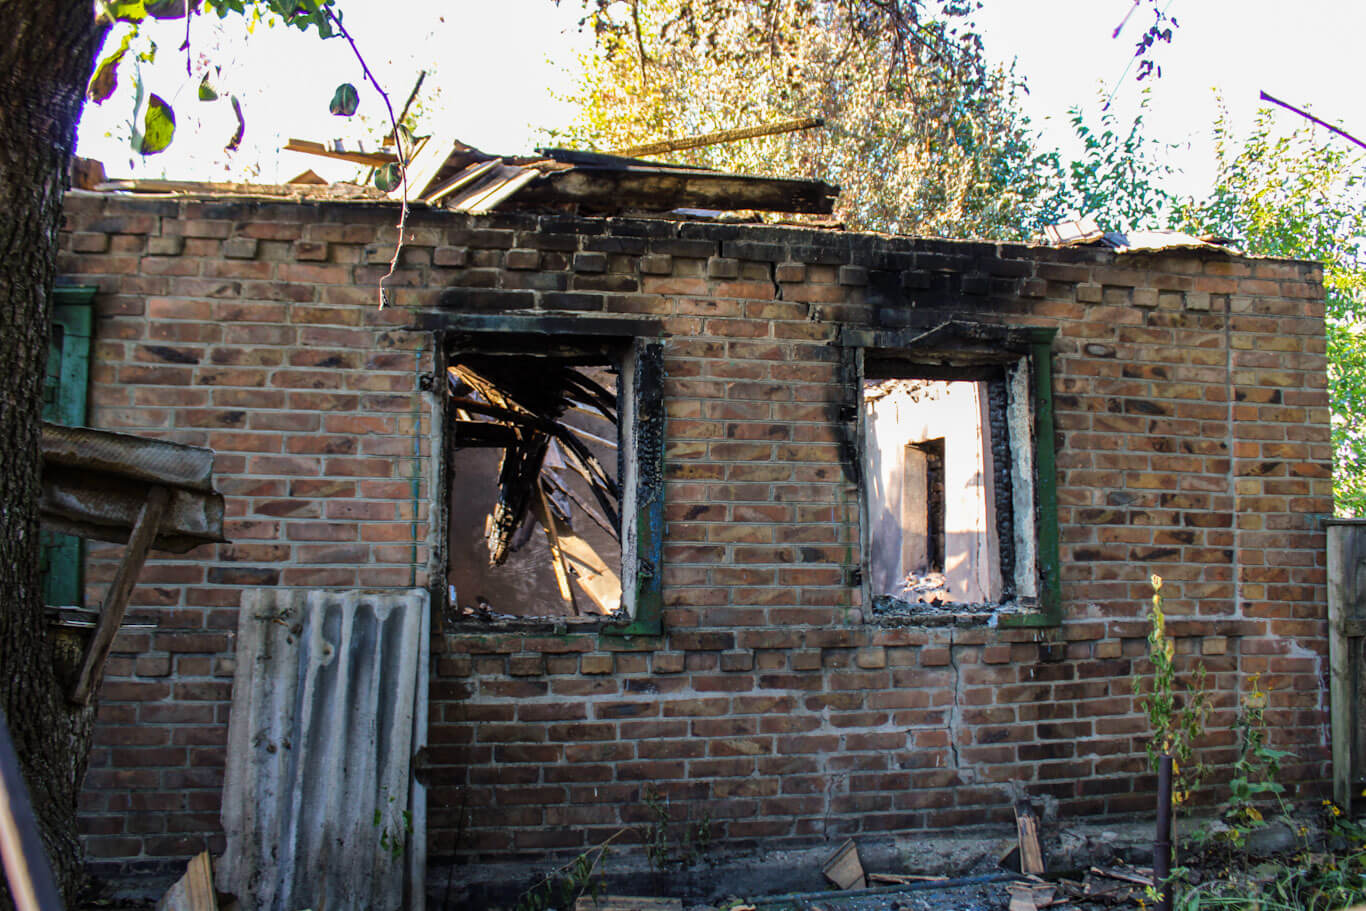 Donbass War Diary burned home